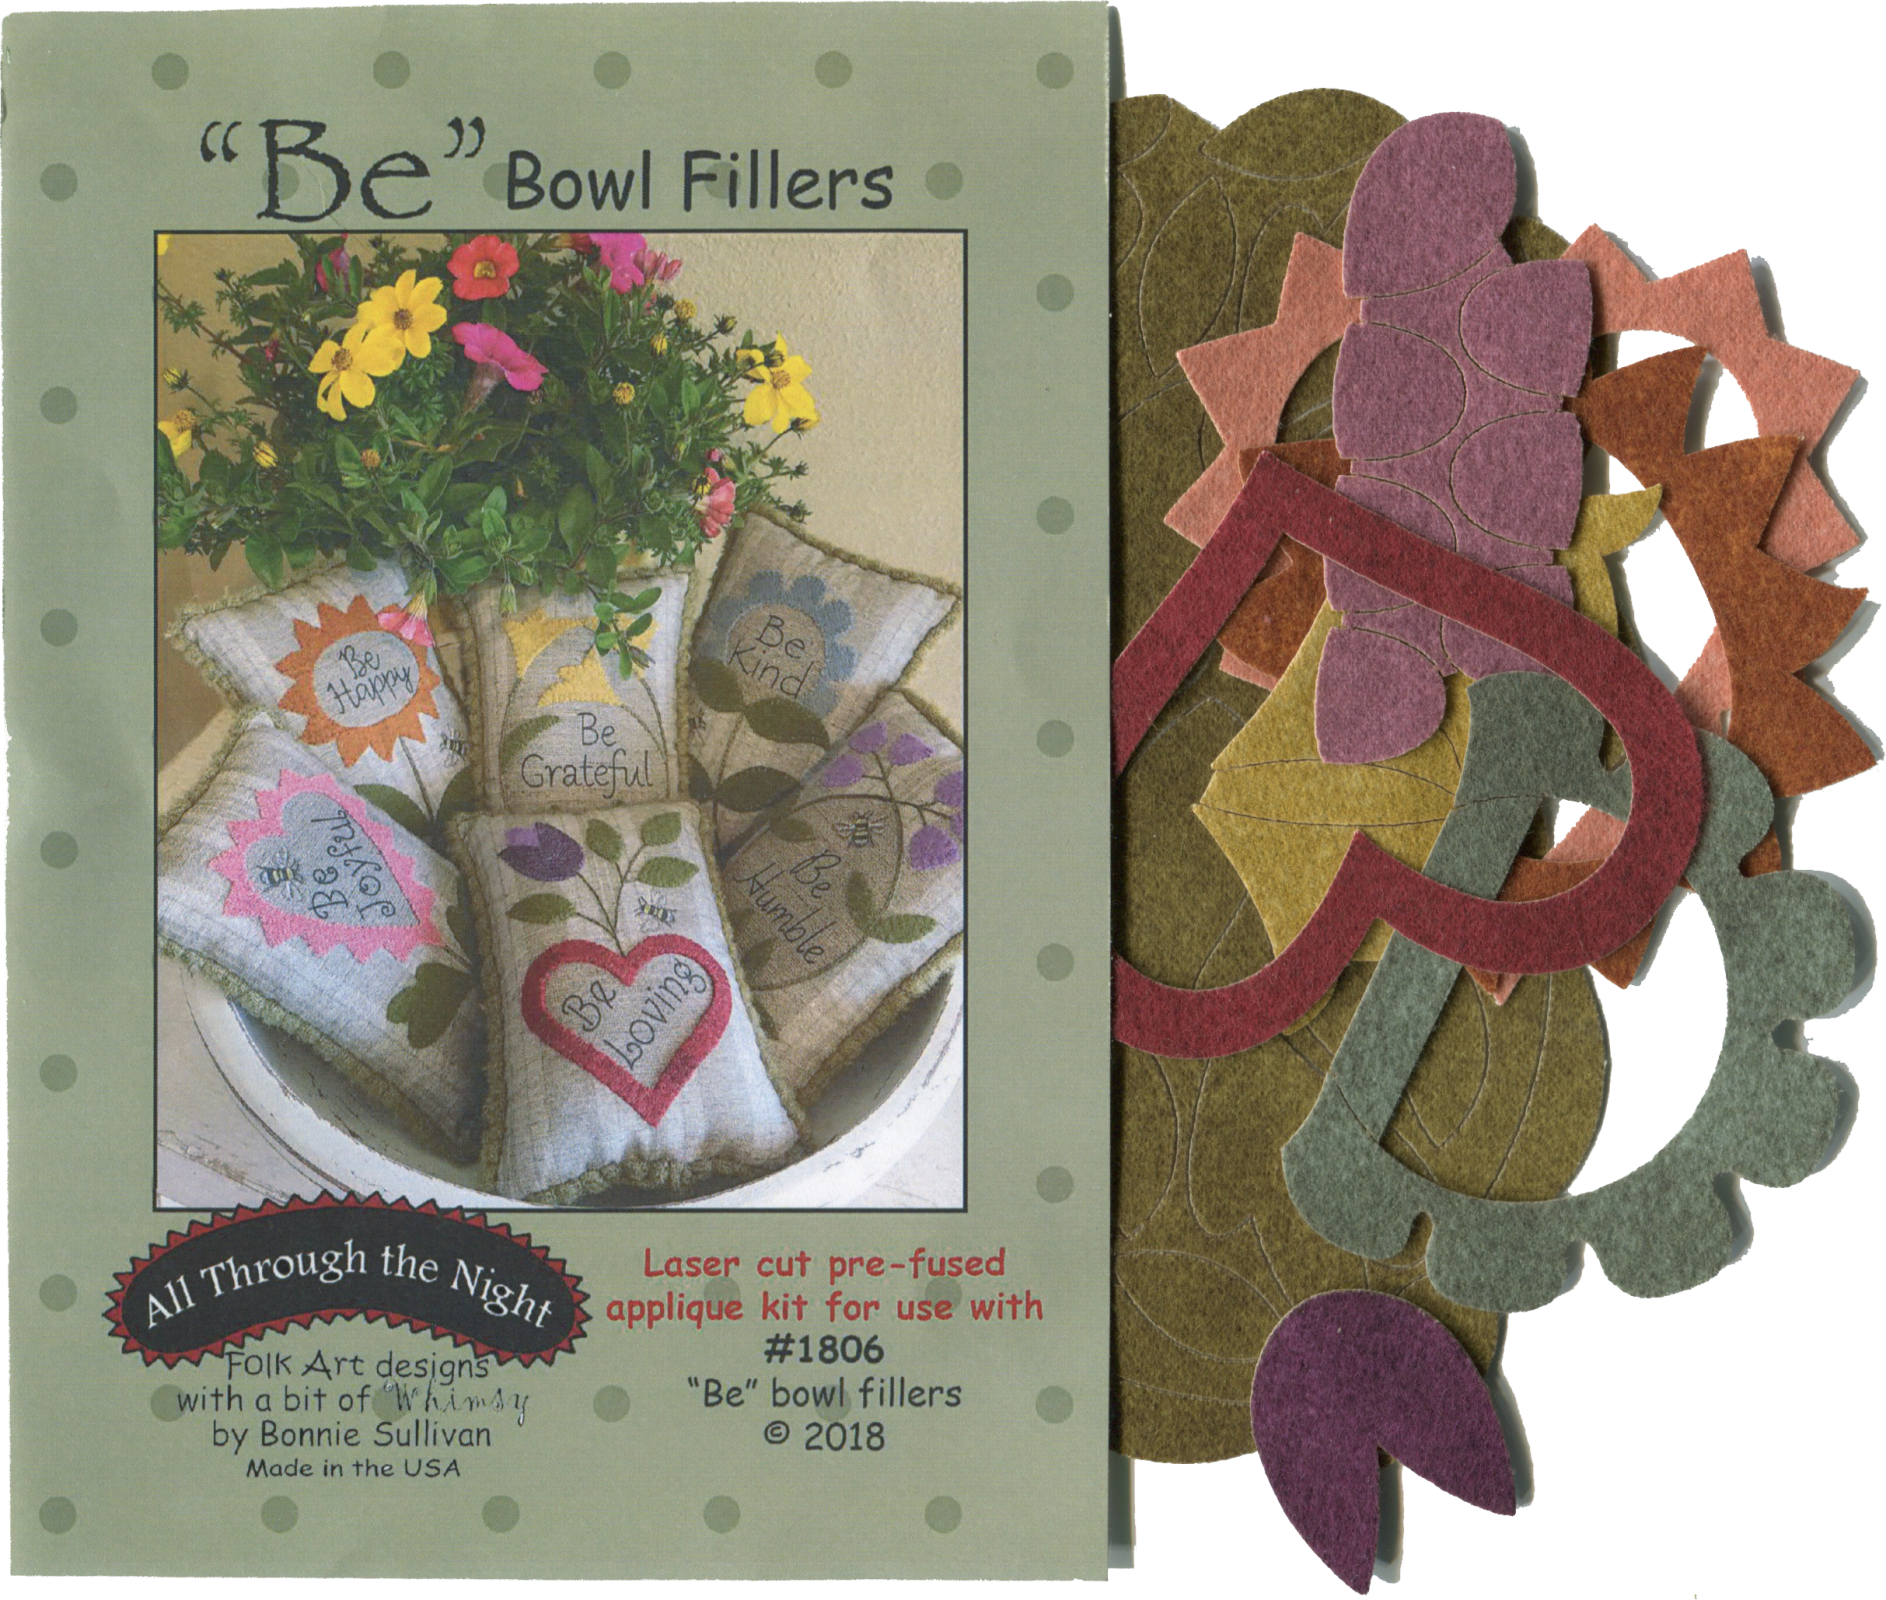 K1806 Be Bowl Fillers Applique Kit